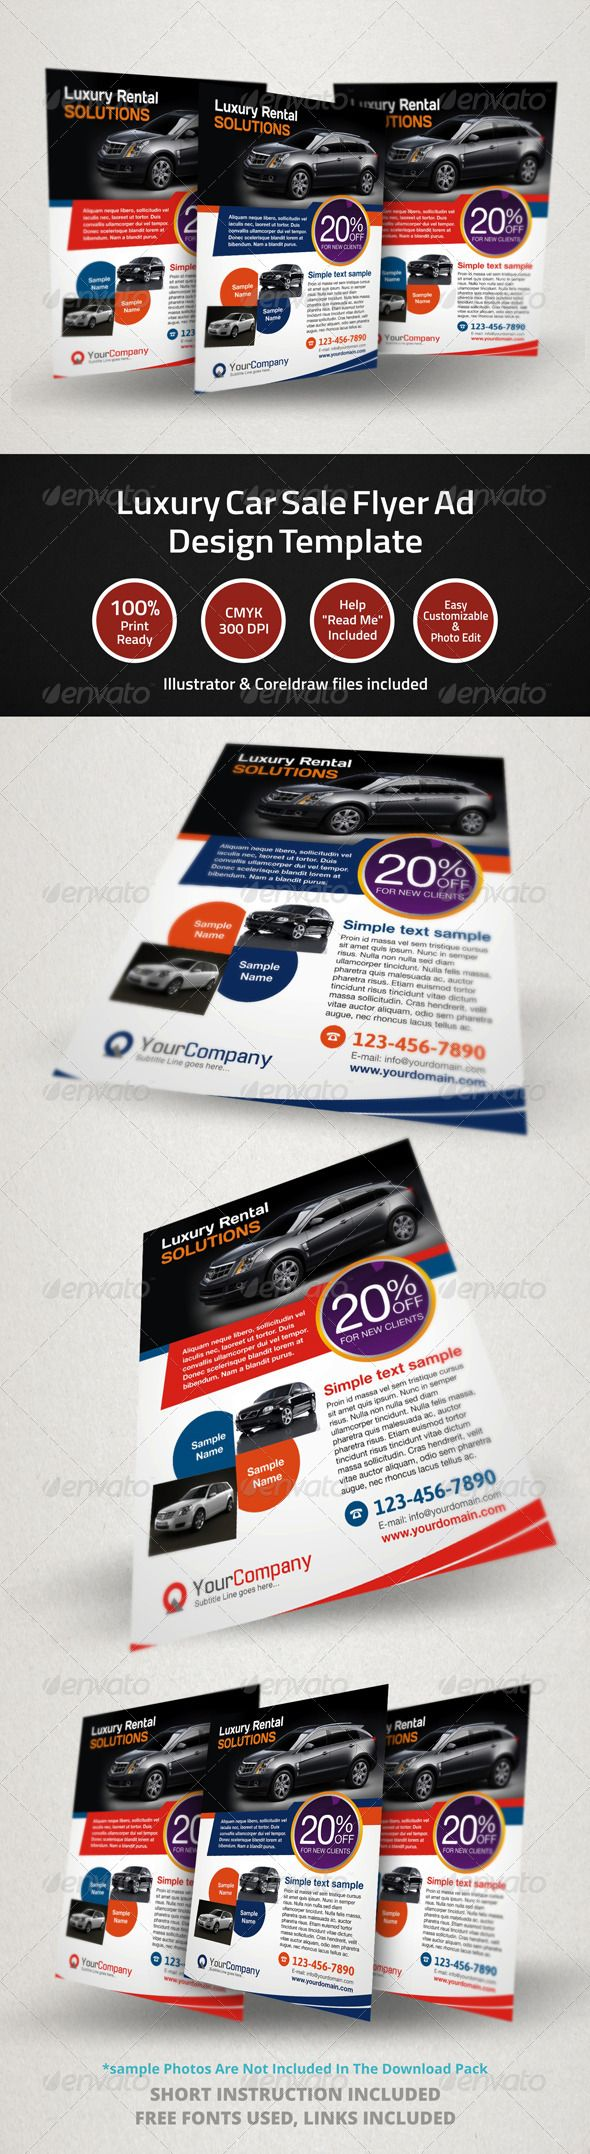 Car For Sale Flyer Luxury Car Sale Flyer Ad Design Template  Mktg Designs  Automotive .